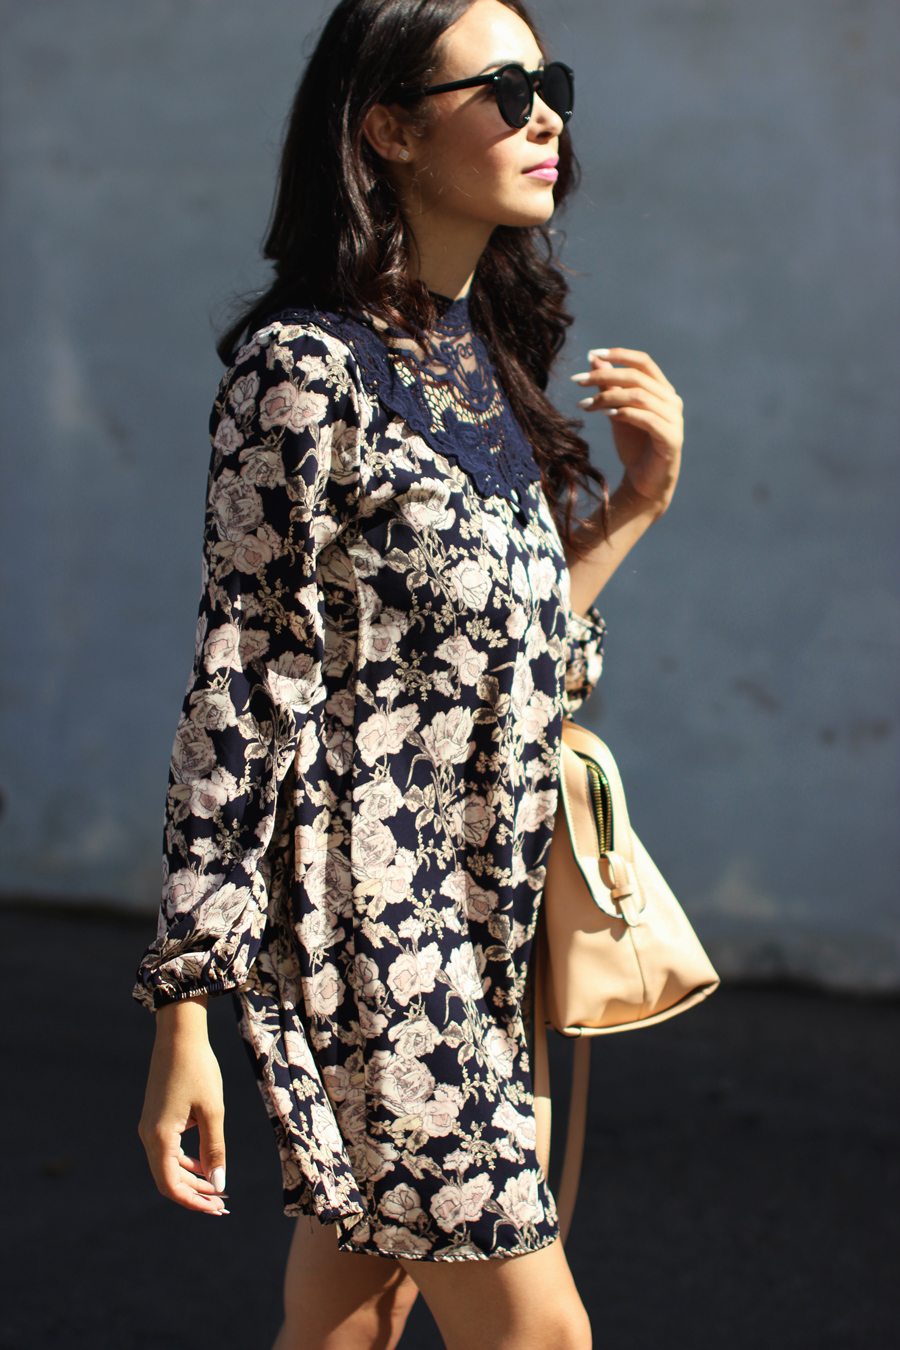 FTT-PINK-AND-SILVER-BLUE-HIGH-NECK-FLORAL-DRESS-13